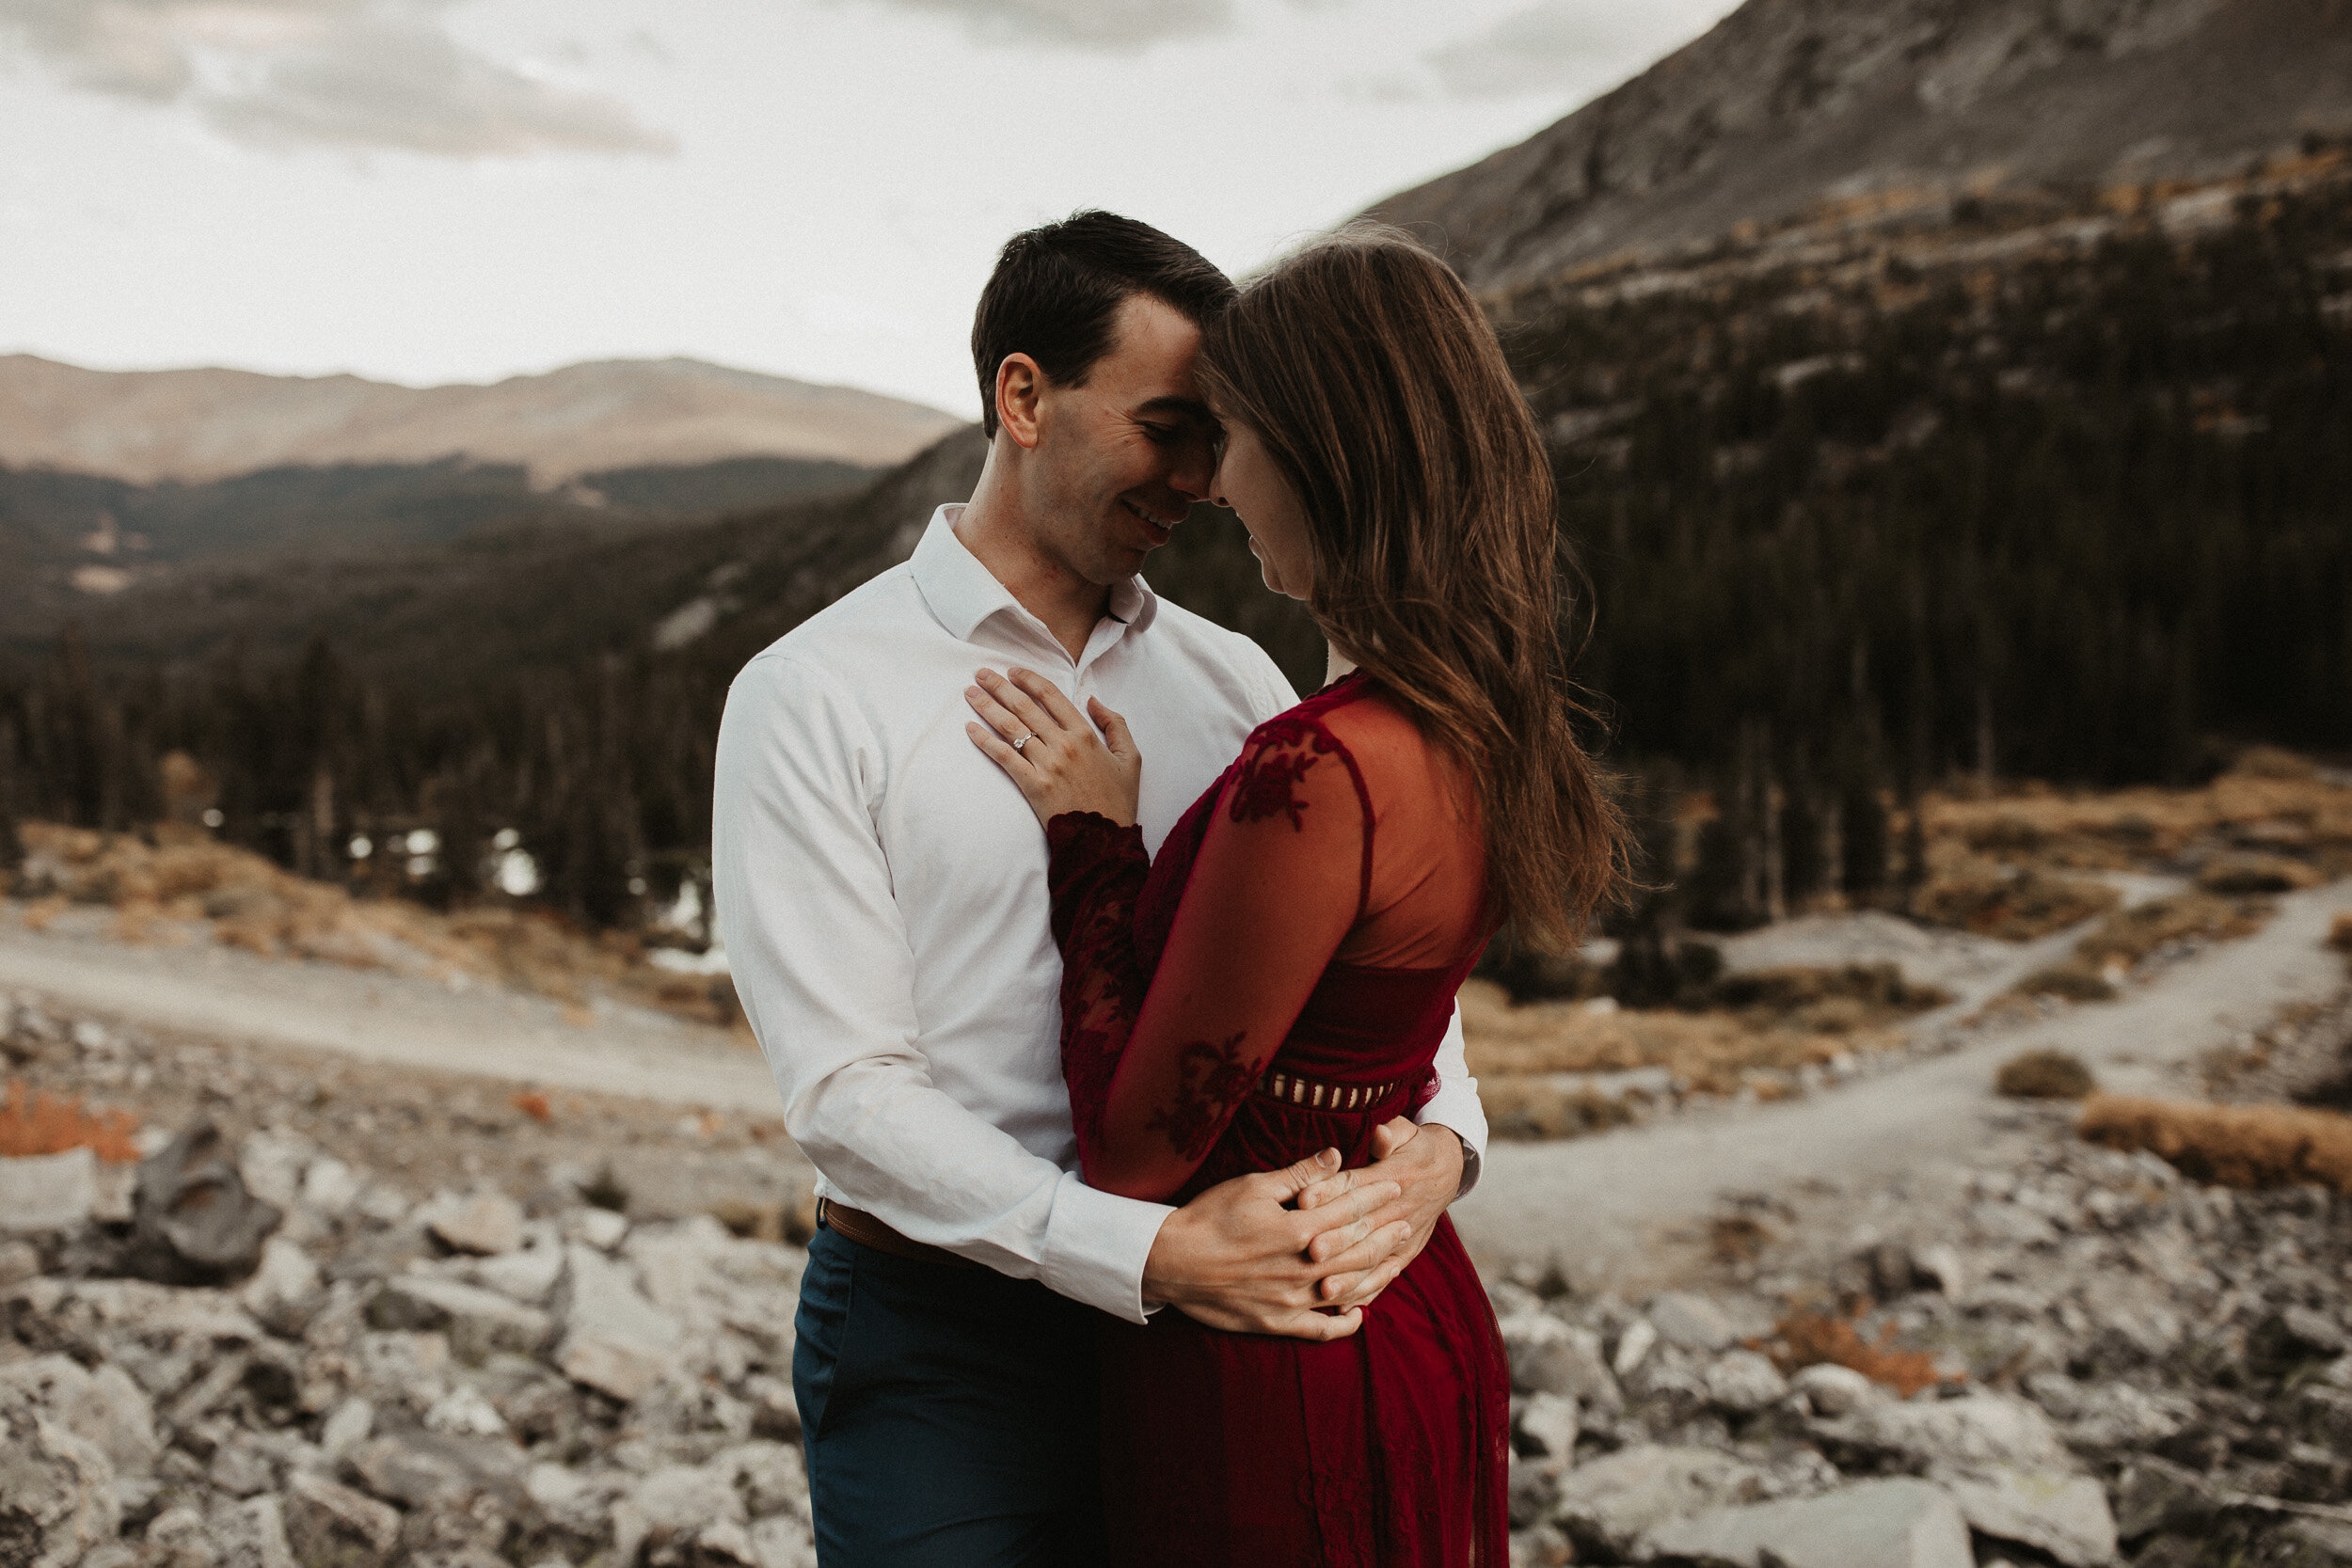 Claire_&_Matthew_Engagment_Breckenridge_Colorado_Fall_0585.jpg